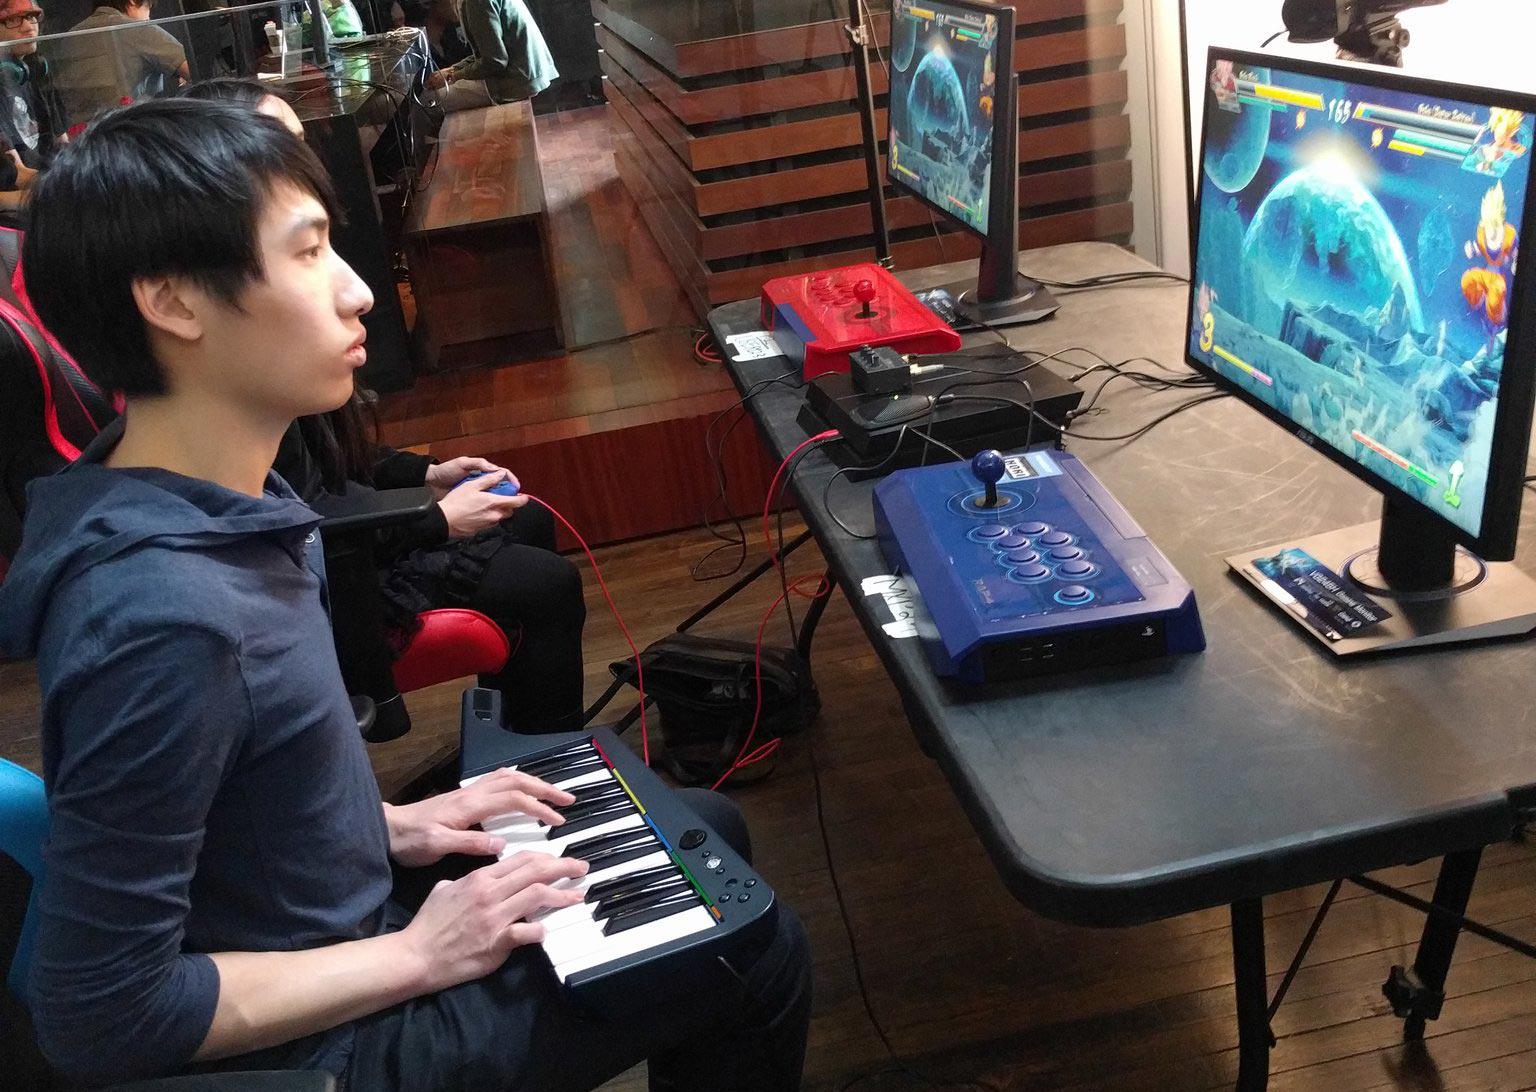 Dragon Ball FighterZ - Canadense usa teclado de Rock Band em torneio de luta